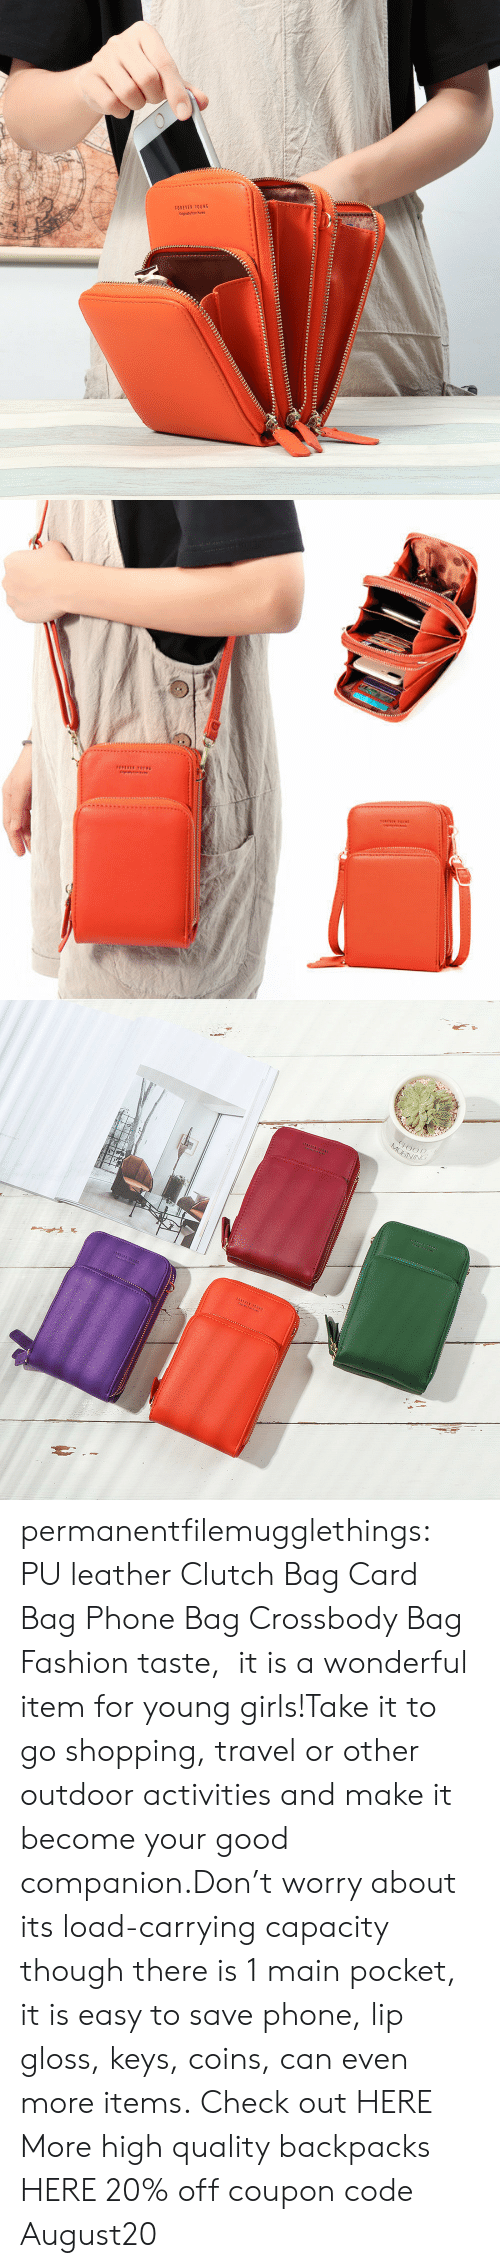 lip: 1OREVER YOUN6  Orgnaly fom Kores   MOINING permanentfilemugglethings: PU leather Clutch Bag Card Bag Phone Bag Crossbody Bag Fashion taste, it is a wonderful item for young girls!Take it to go shopping, travel or other outdoor activities and make it become your good companion.Don't worry about its load-carrying capacity though there is 1 main pocket, it is easy to save phone, lip gloss, keys, coins, can even more items. Check out HERE More high quality backpacks HERE  20% off coupon code:August20